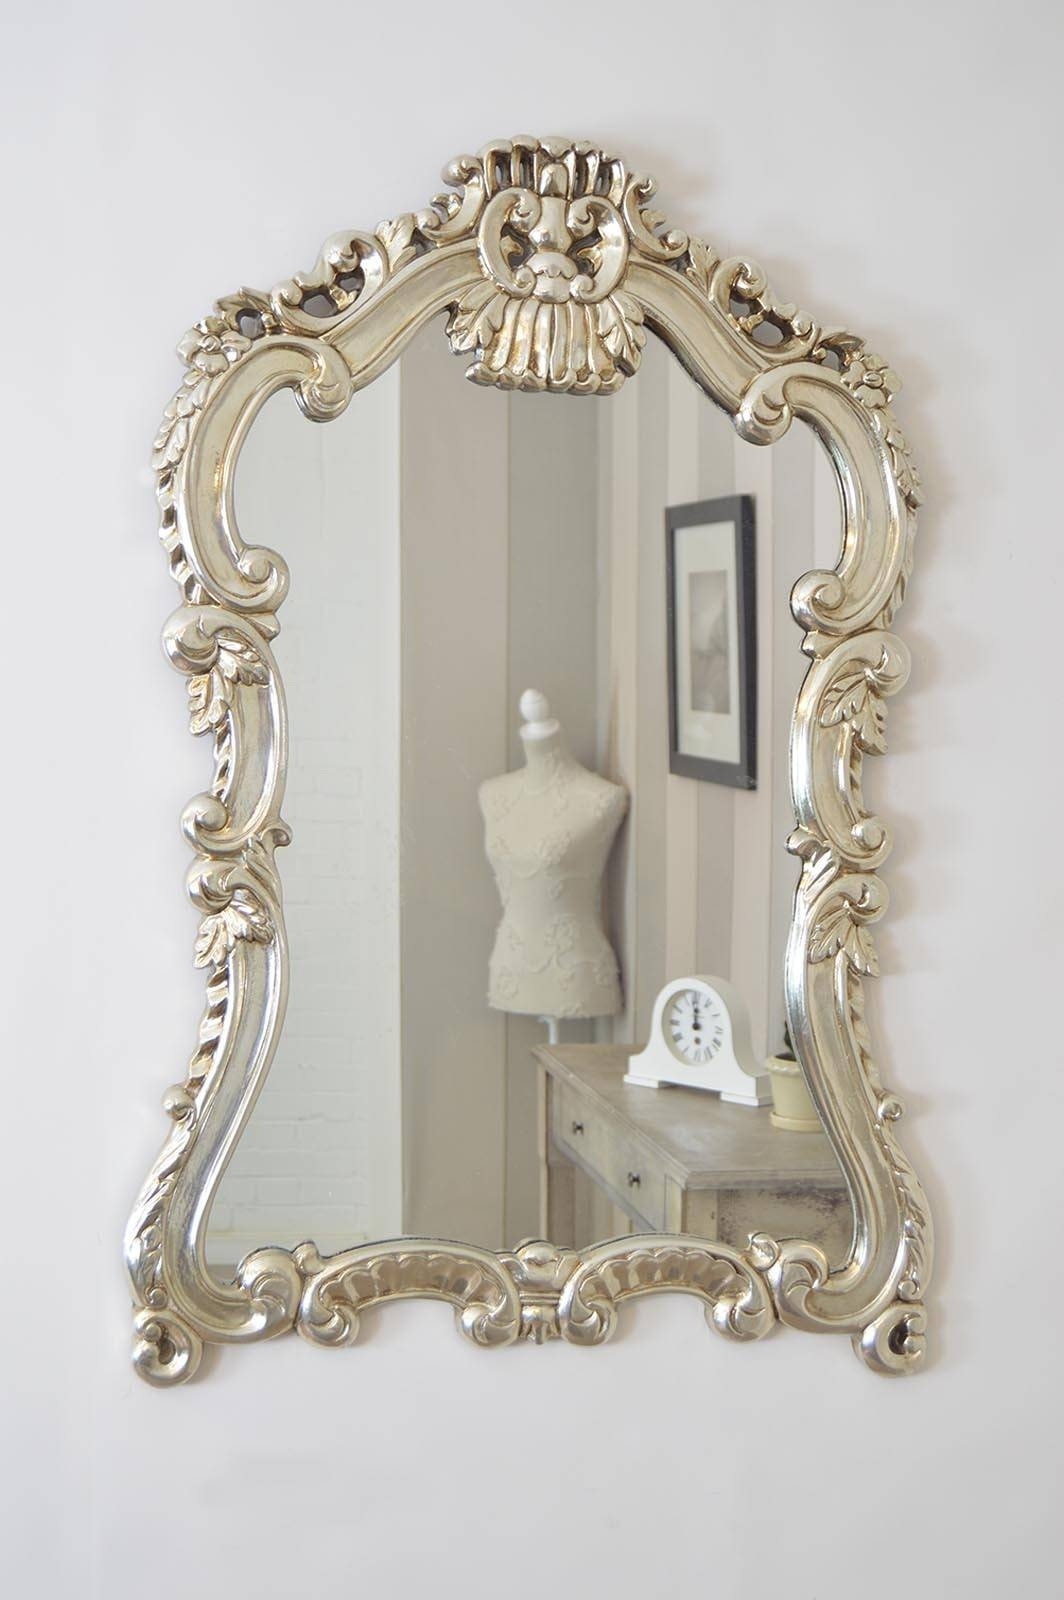 Baroque Wall Mirror - Wall Art Design within Large Ornate Silver Mirrors (Image 6 of 25)